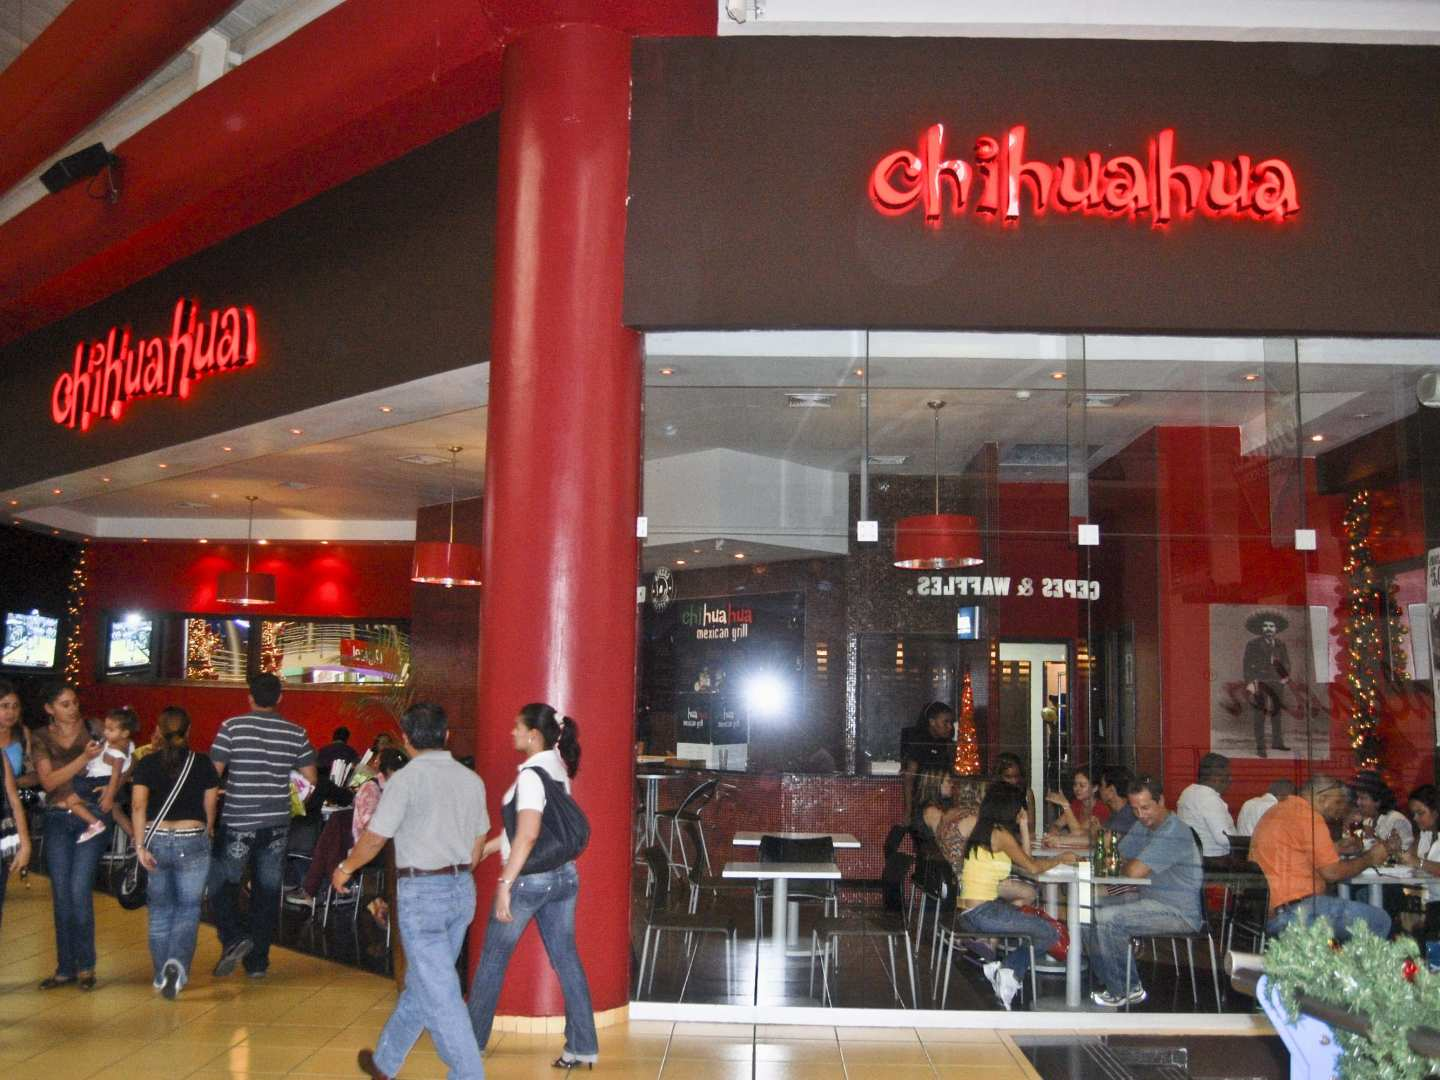 Chihuahua Mexican Grill en Panamá